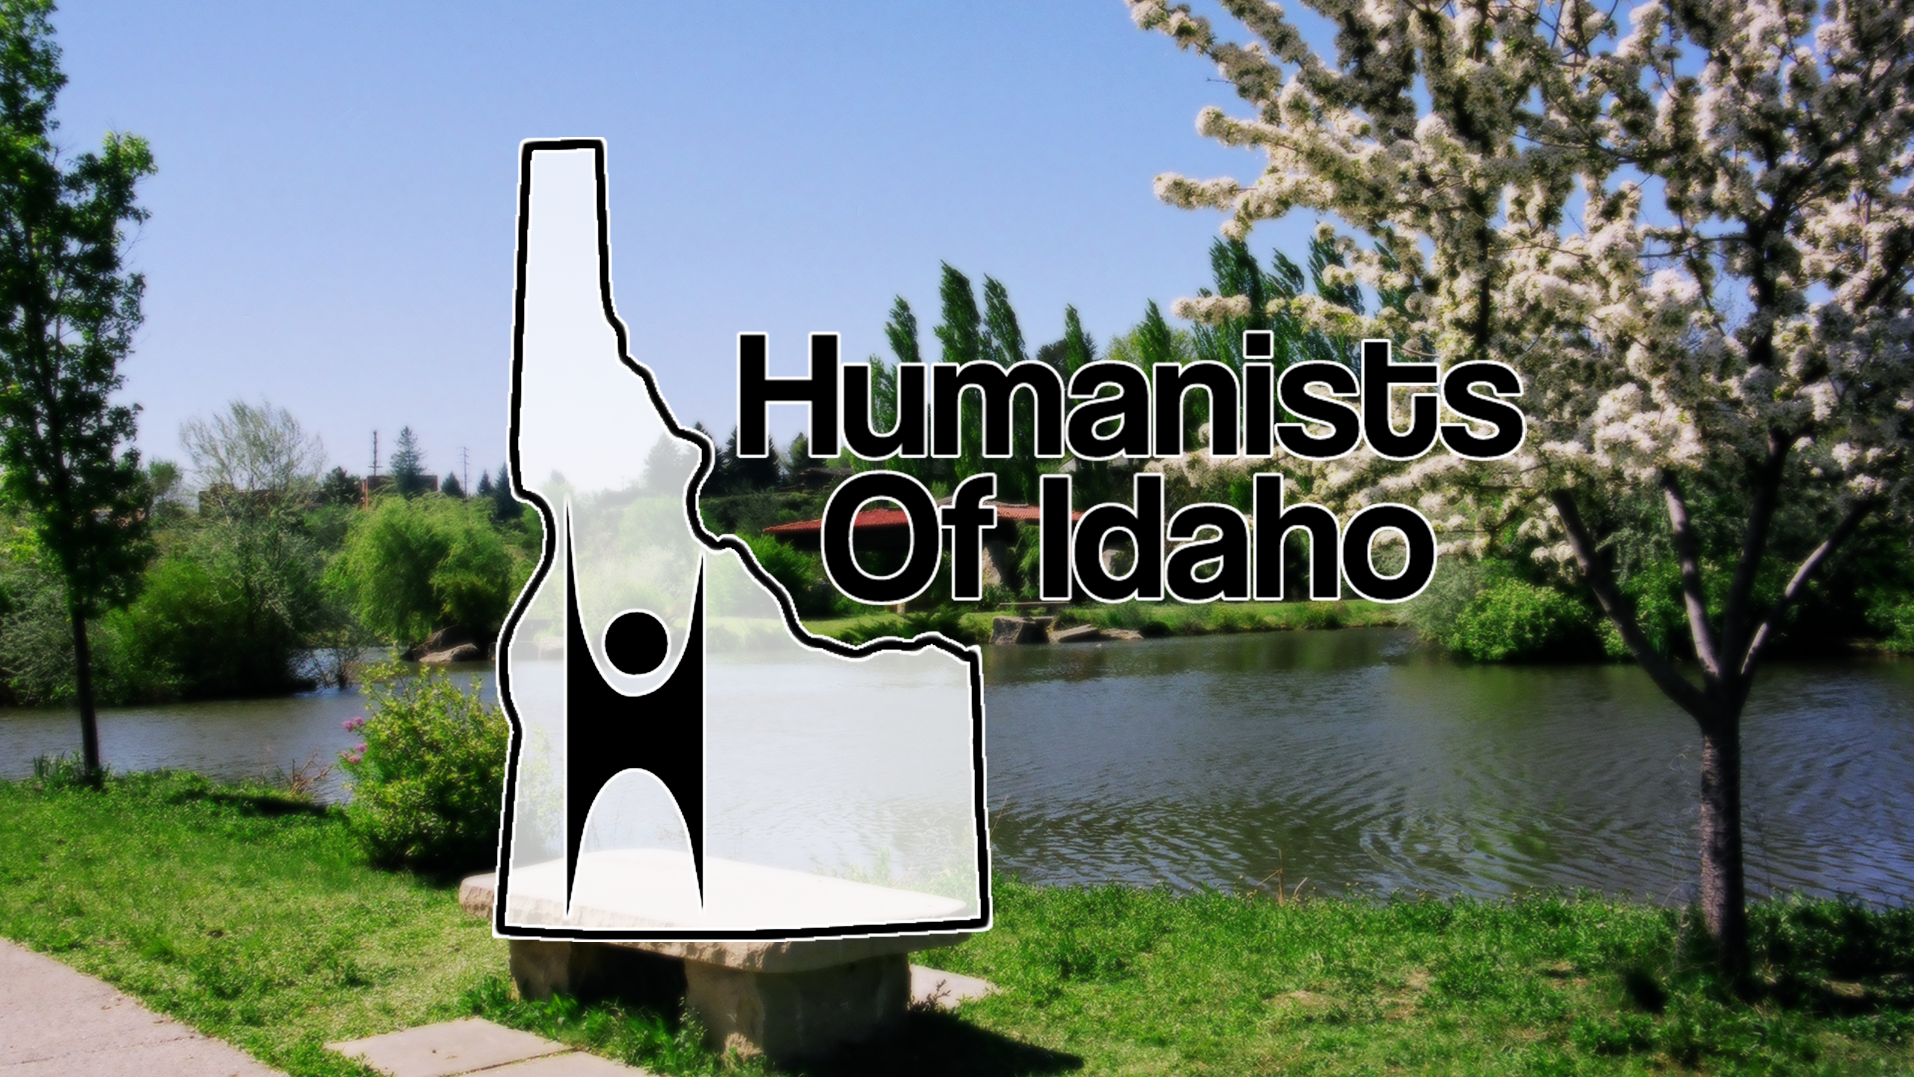 Humanists of Idaho